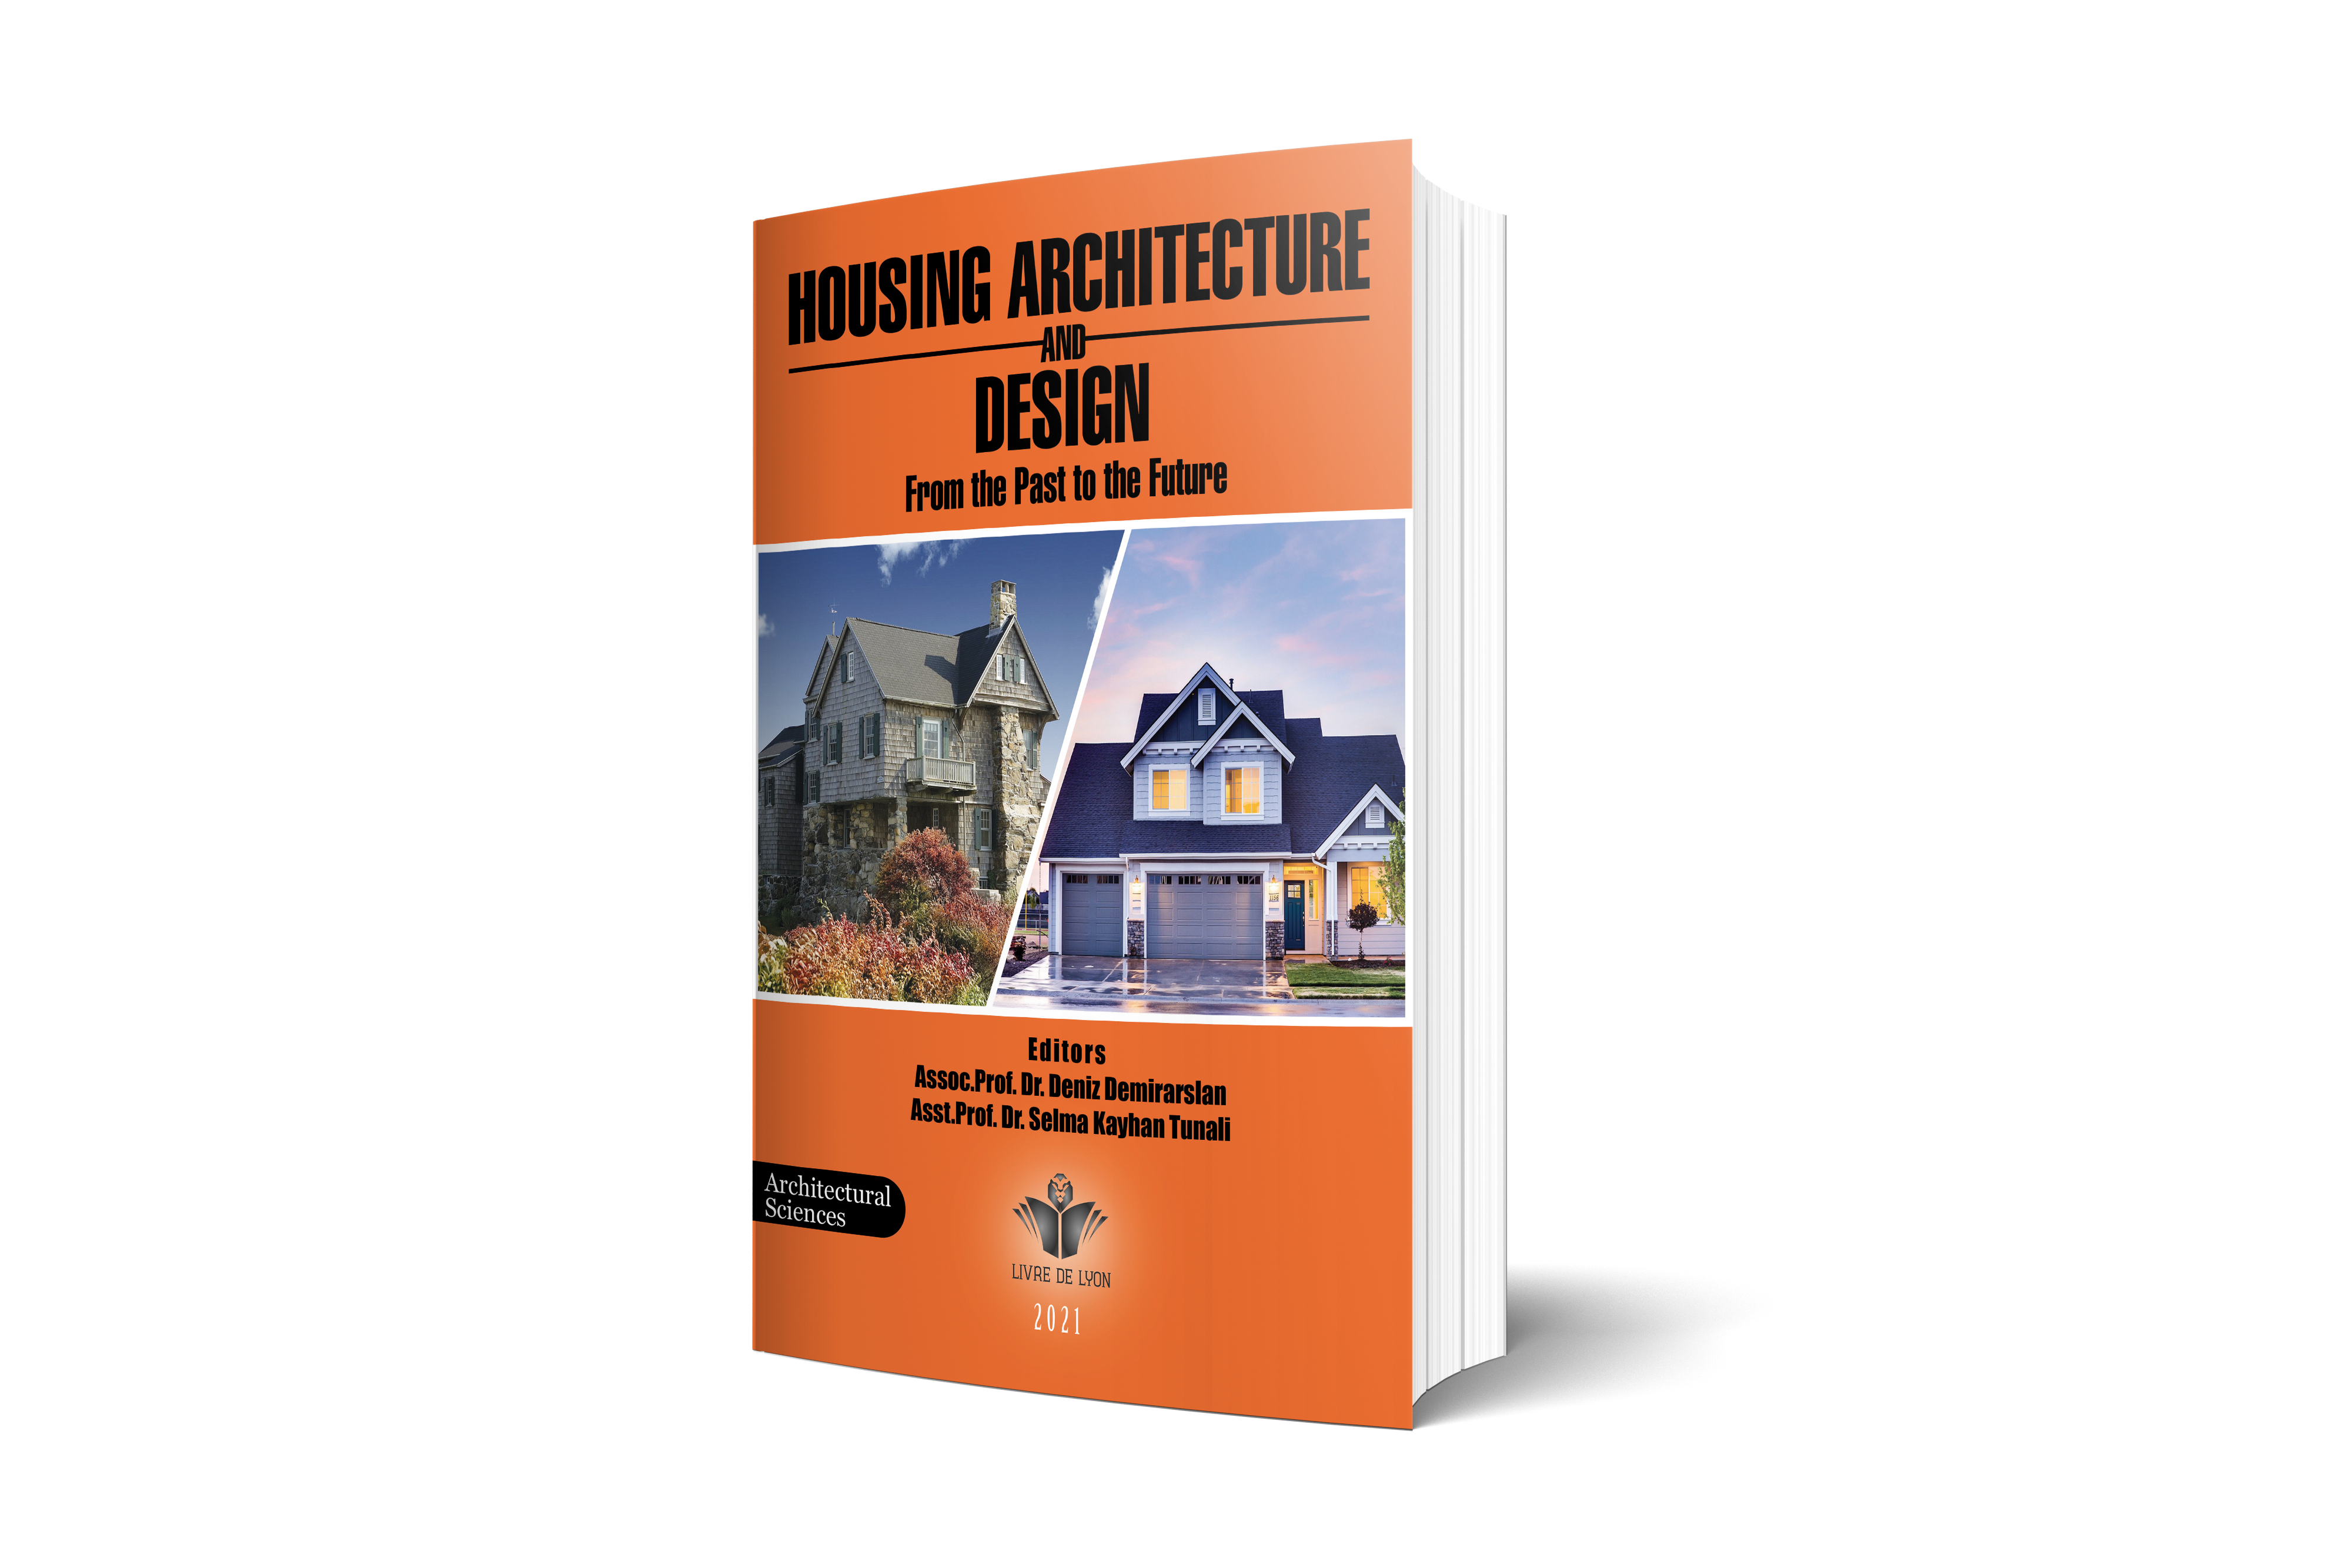 Housing Architecture And Design From the Past to the Future